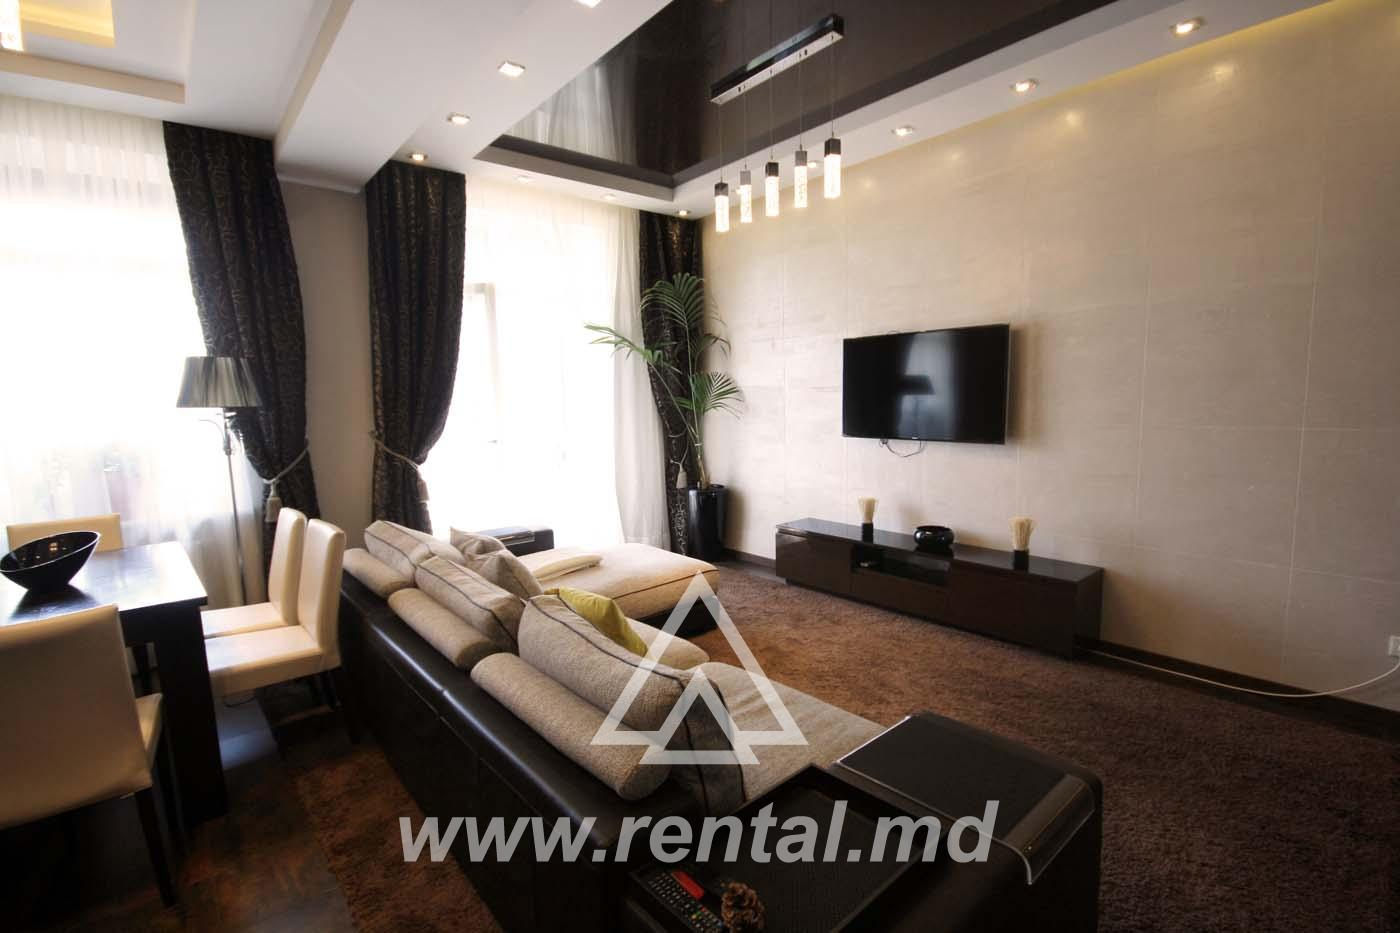 VIP Apartment for rent in Chisinau